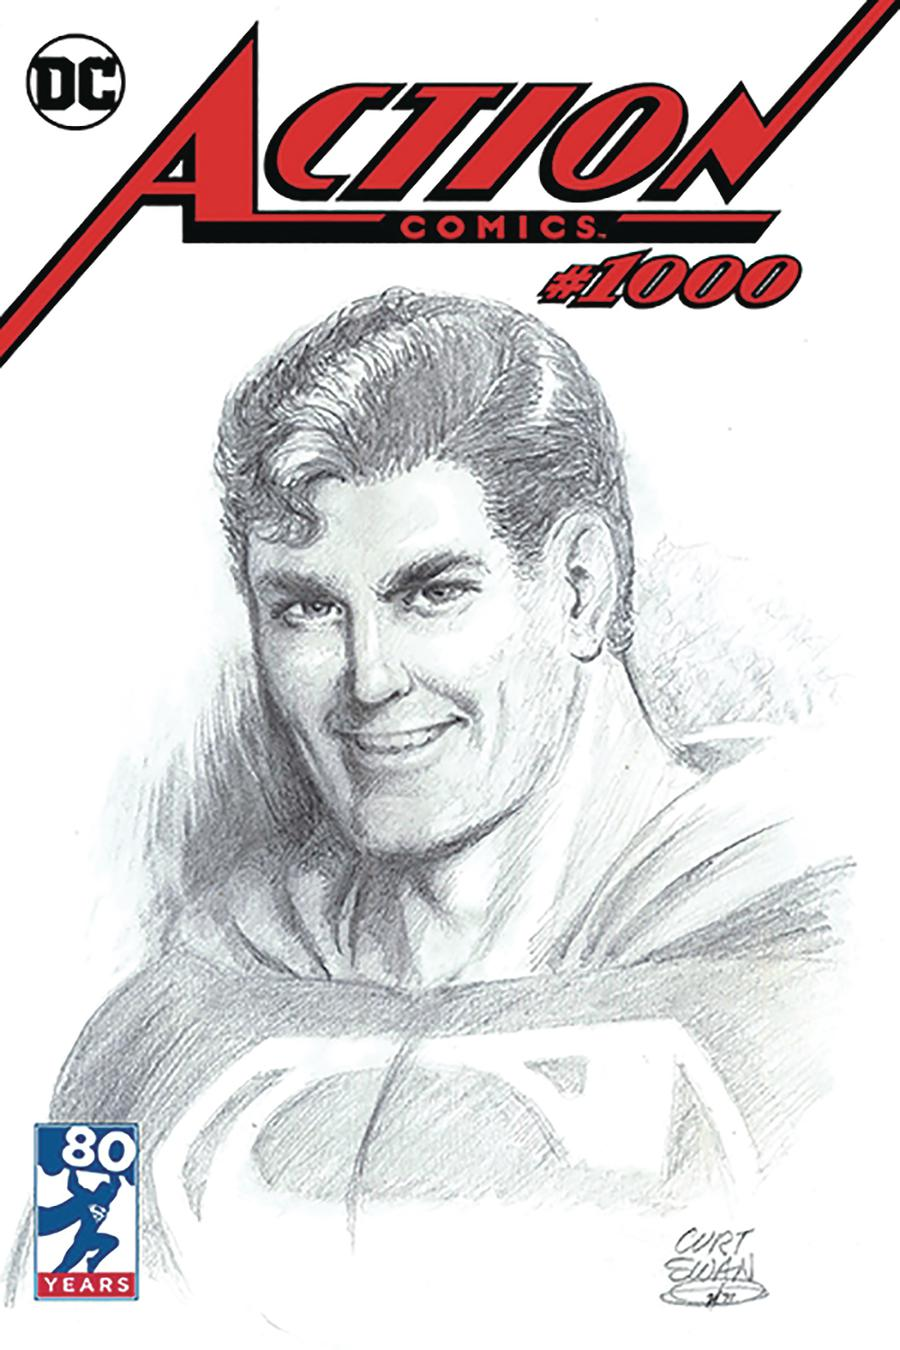 Action Comics Vol 2 #1000 Cover Z-M DF Curt Swan Variant Cover Signed By Scott Snyder